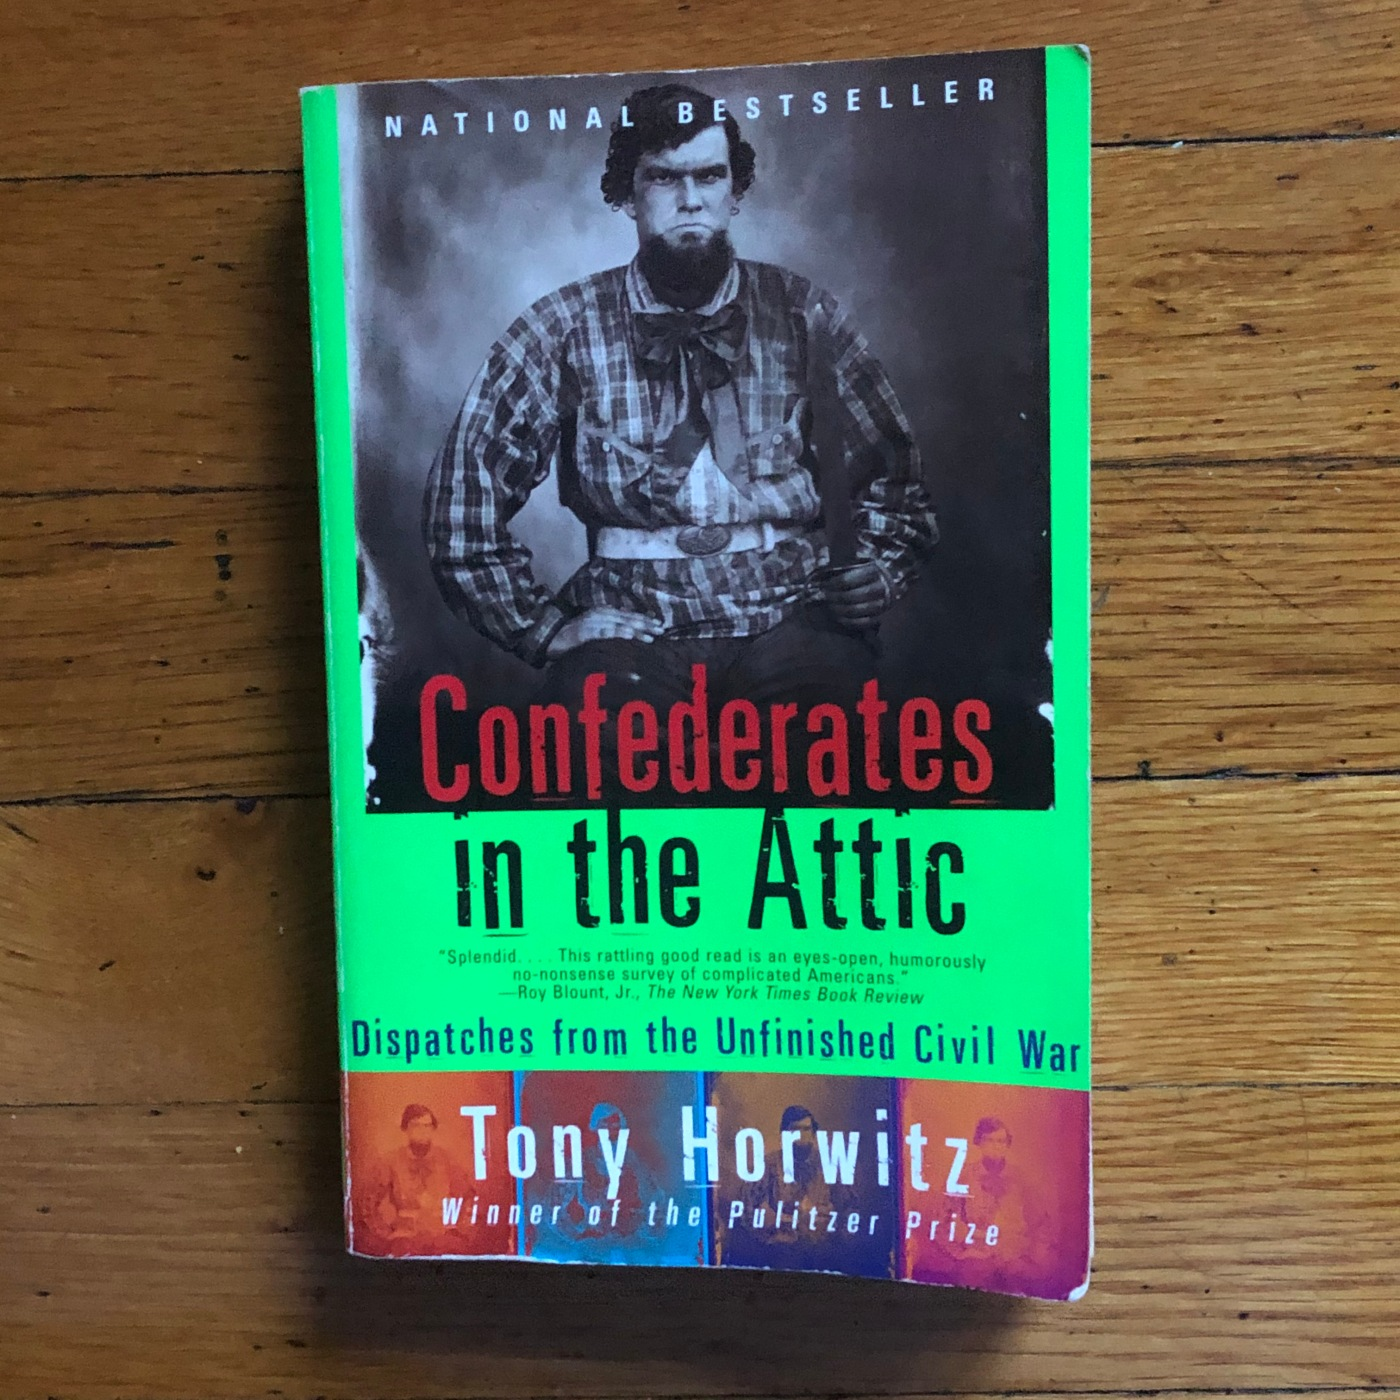 The book Confederates in the Attic by Tony Horowitz